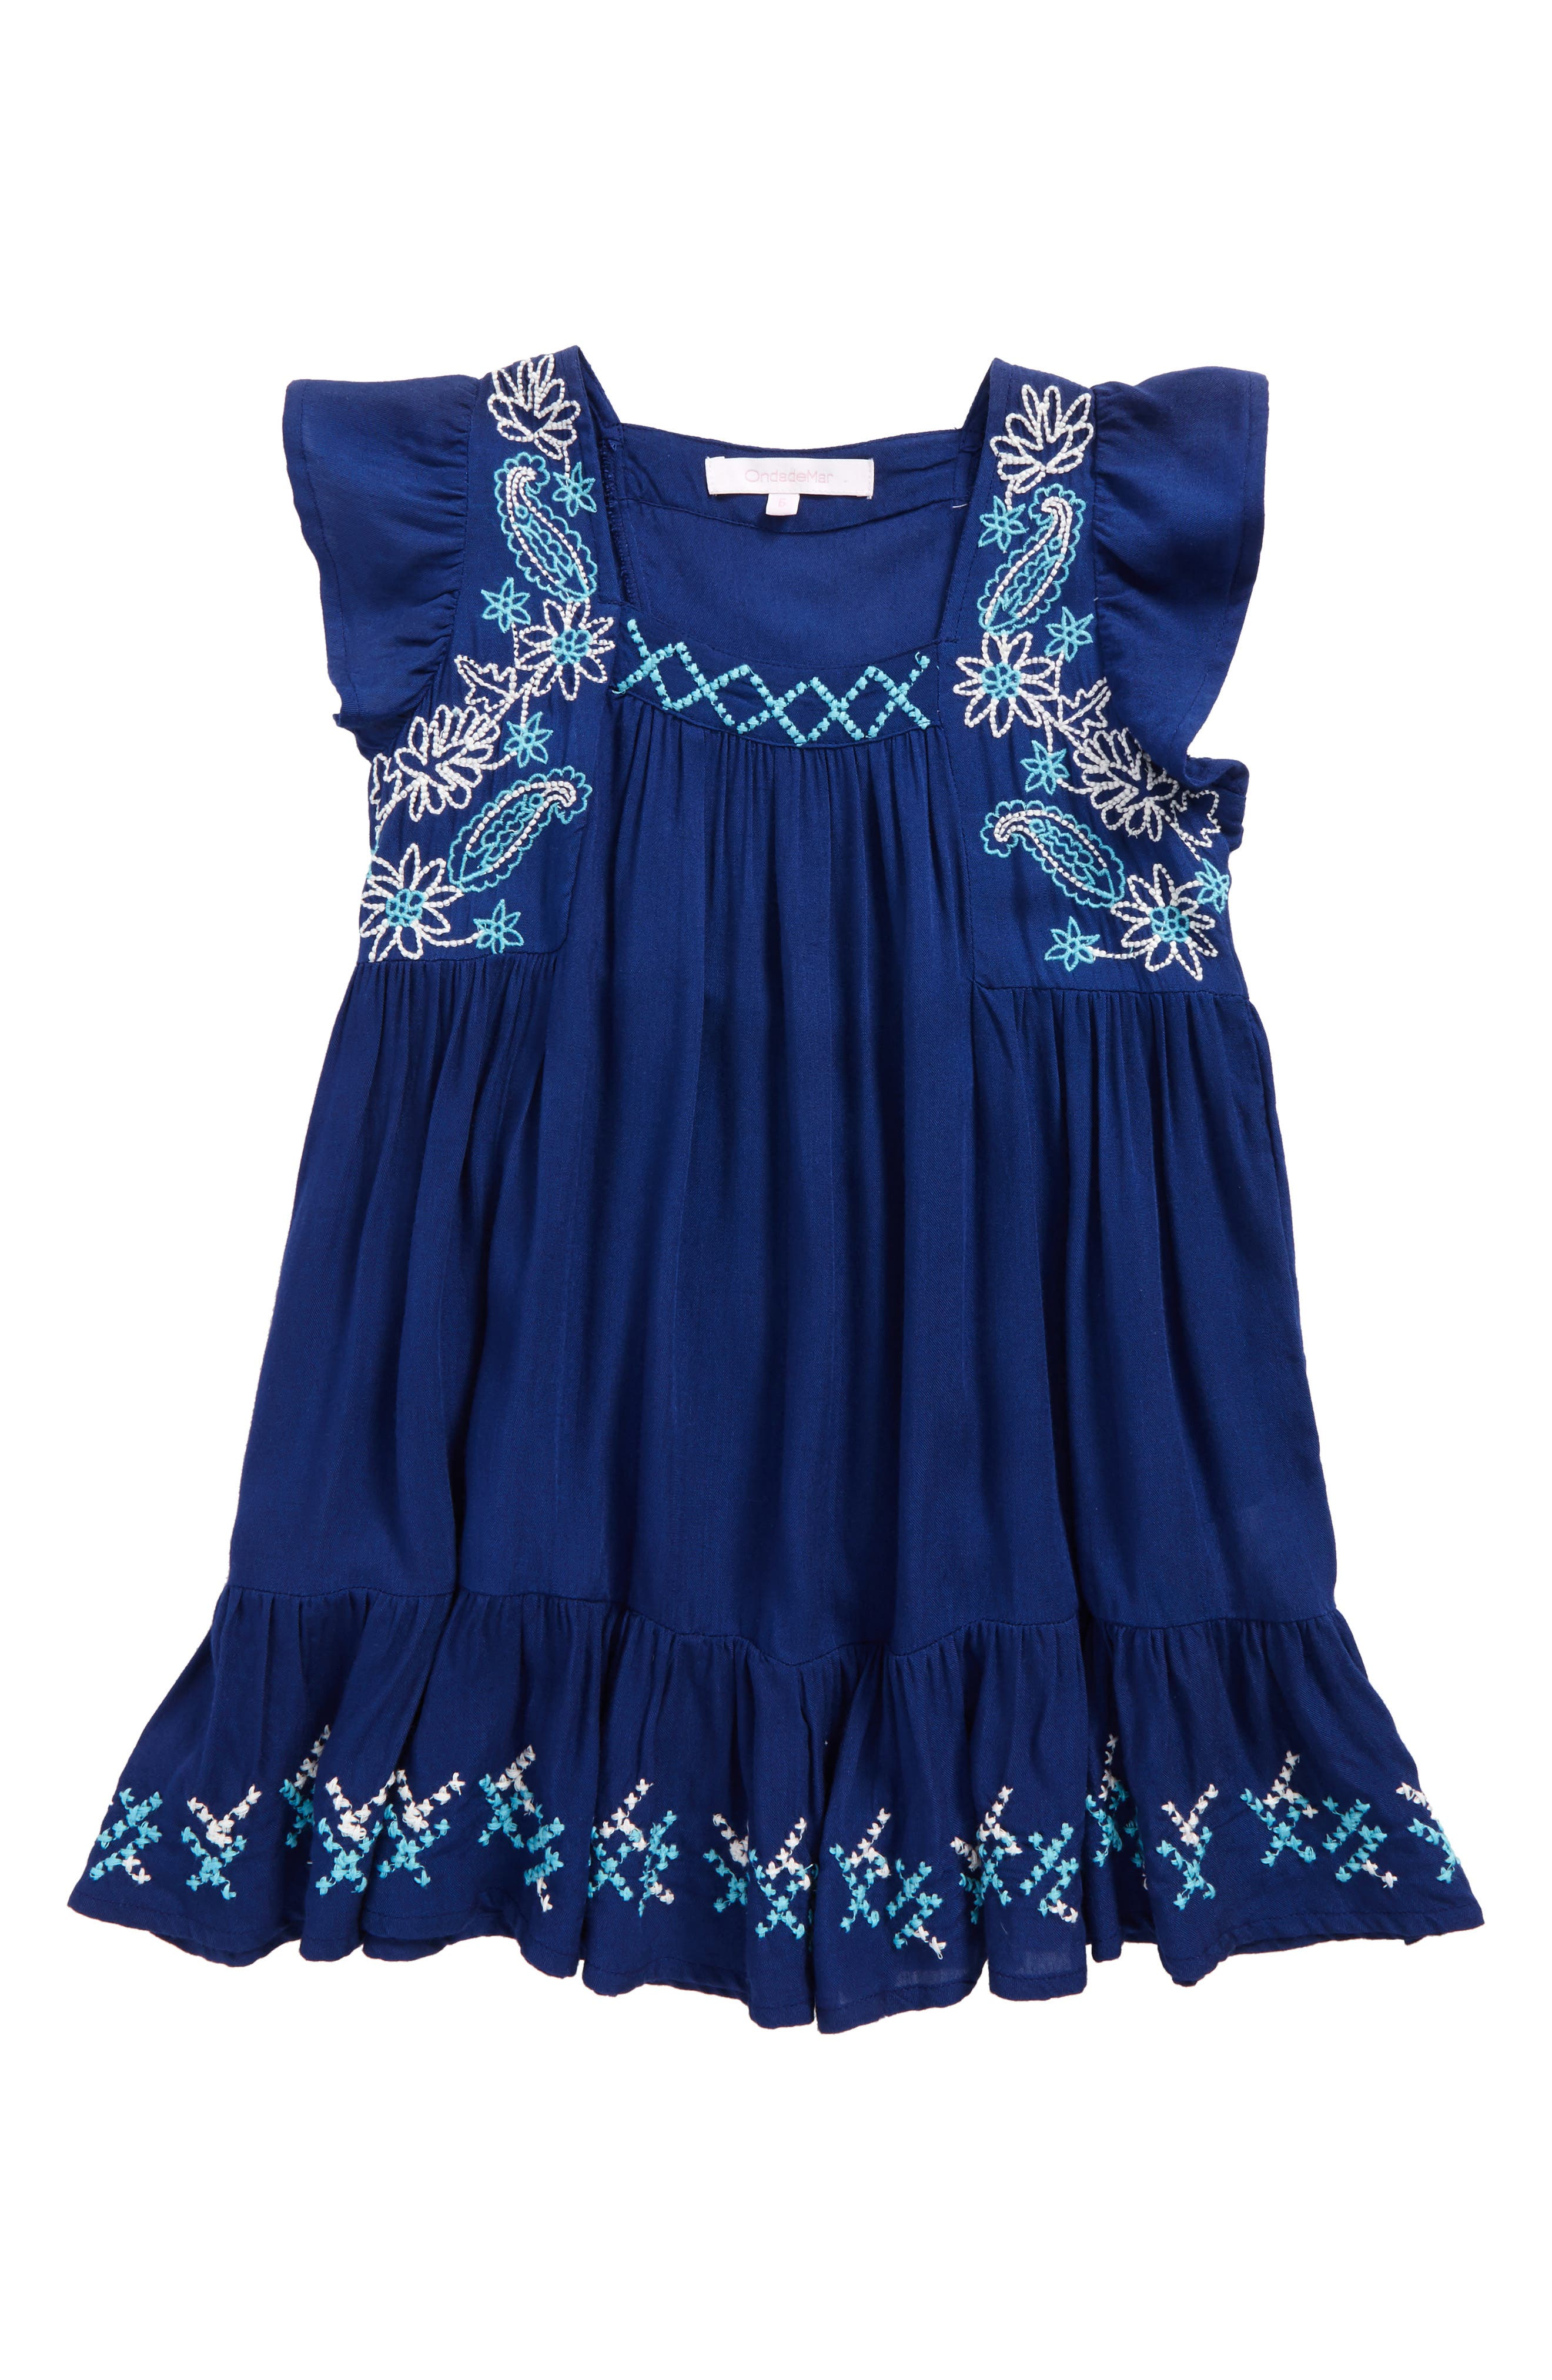 Main Image - OndadeMar Lotto Cover-Up Dress (Big Girls)